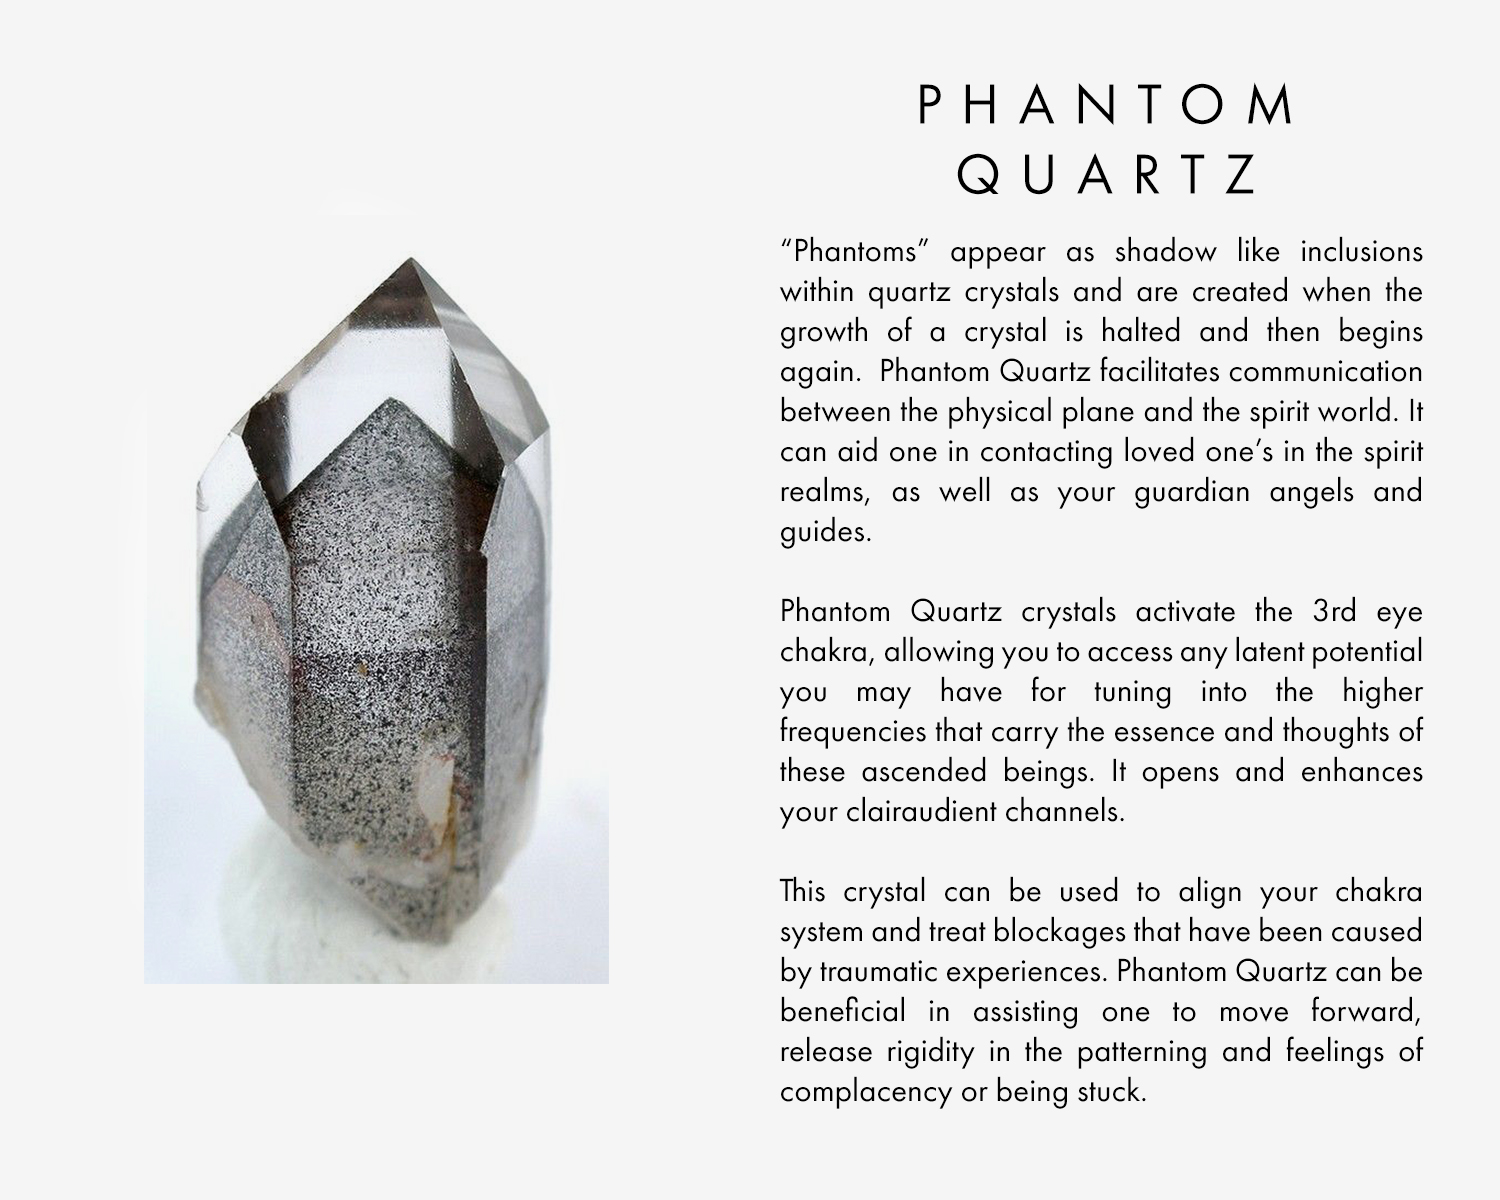 """""""Phantoms"""" appear as shadow like inclusions within quartz crystals and are created when the growth of a crystal is halted and then begins again. Phantom Quartz facilitates communication between the physical plane and the spirit world. It can aid one in contacting loved one's in the spirit realms, as well as your guardian angels and guides.  Phantom Quartz crystals activate the 3rd eye chakra, allowing you to access any latent potential you may have for tuning into the higher frequencies that carry the essence and thoughts of these ascended beings. It opens and enhances your clairaudient channels.  This crystal can be used to align your chakra system and treat blockages that have been caused by traumatic experiences. Phantom Quartz can be beneficial in assisting one to move forward, release rigidity in the patterning and feelings of complacency or being stuck"""